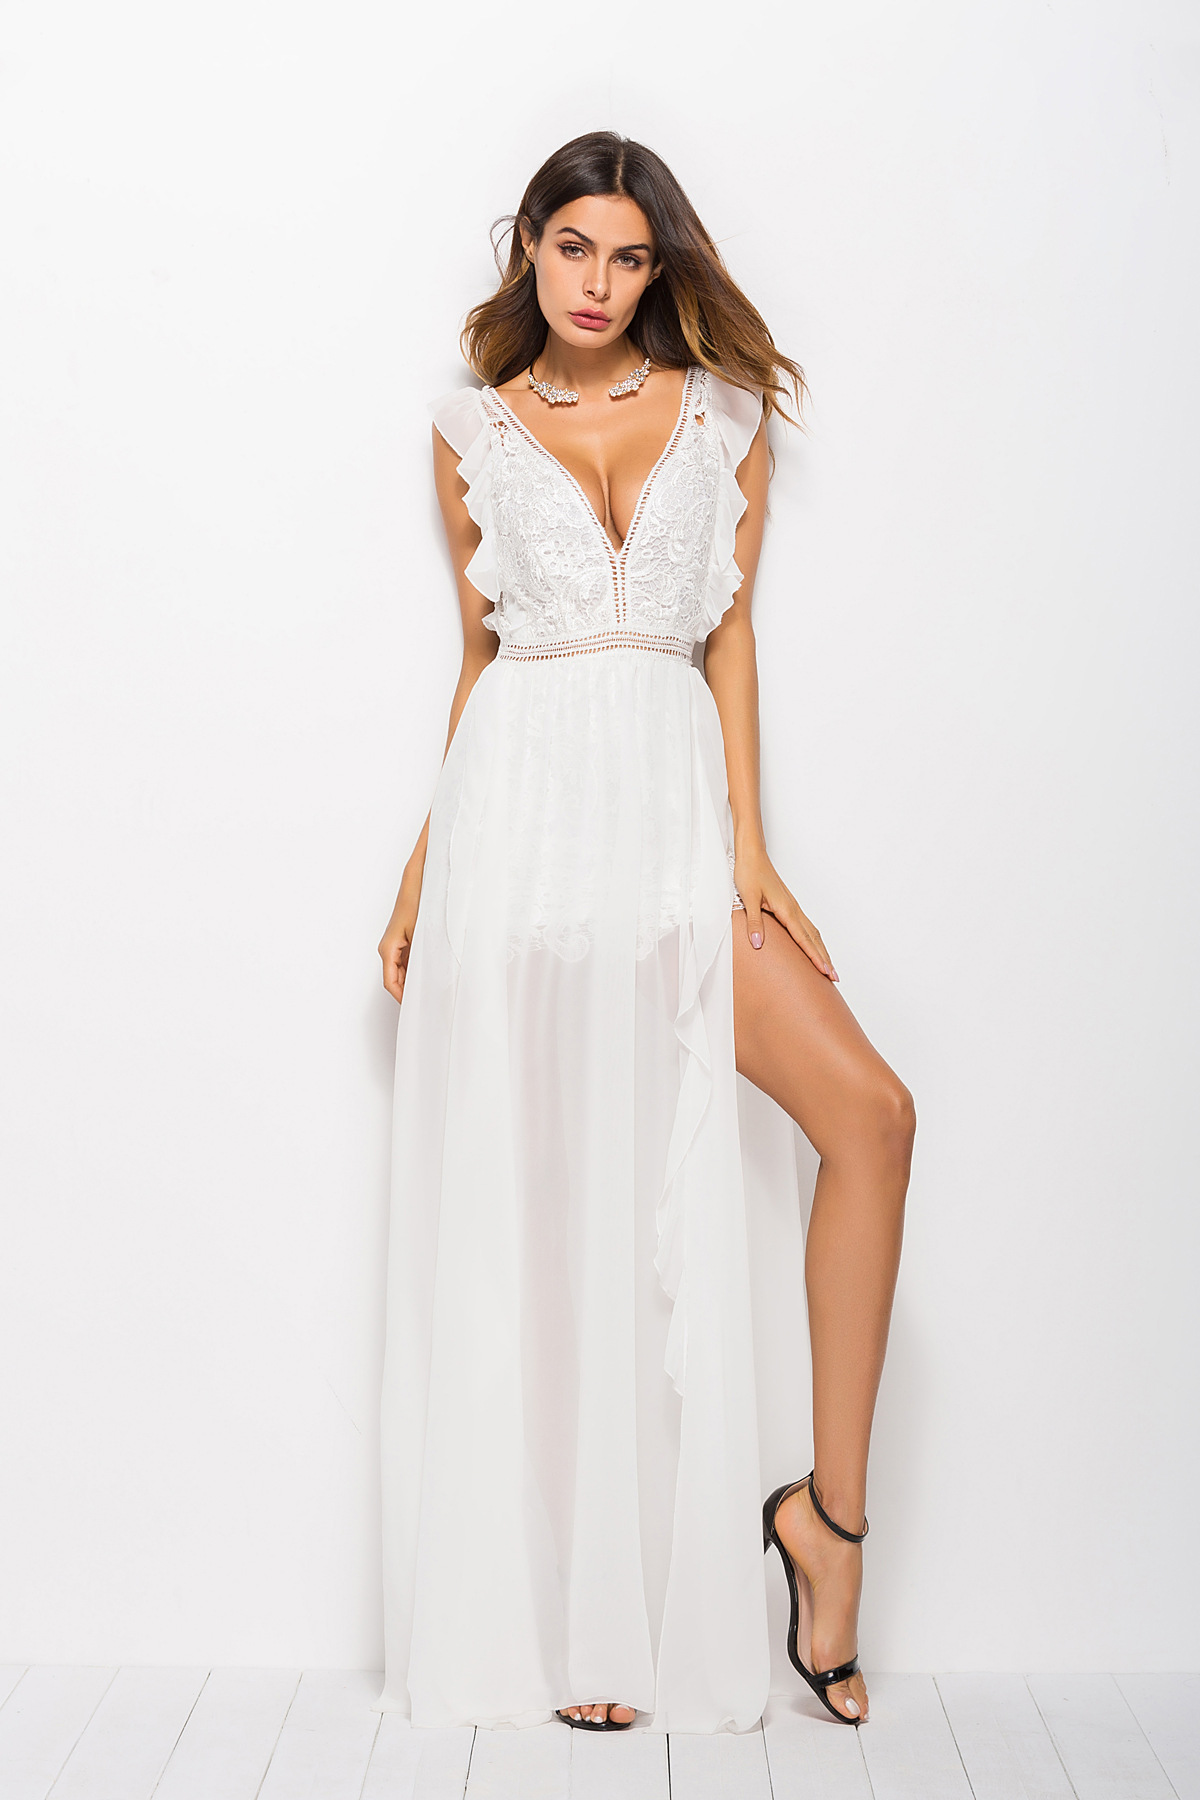 2b67d39a4e ArtSu Sexy Hollow Out White Lace Dress Women High Split Crochet Chiffon  Maxi Party Dress Ruffle V Neck Elegant Robe Longue Femme-in Dresses from ...